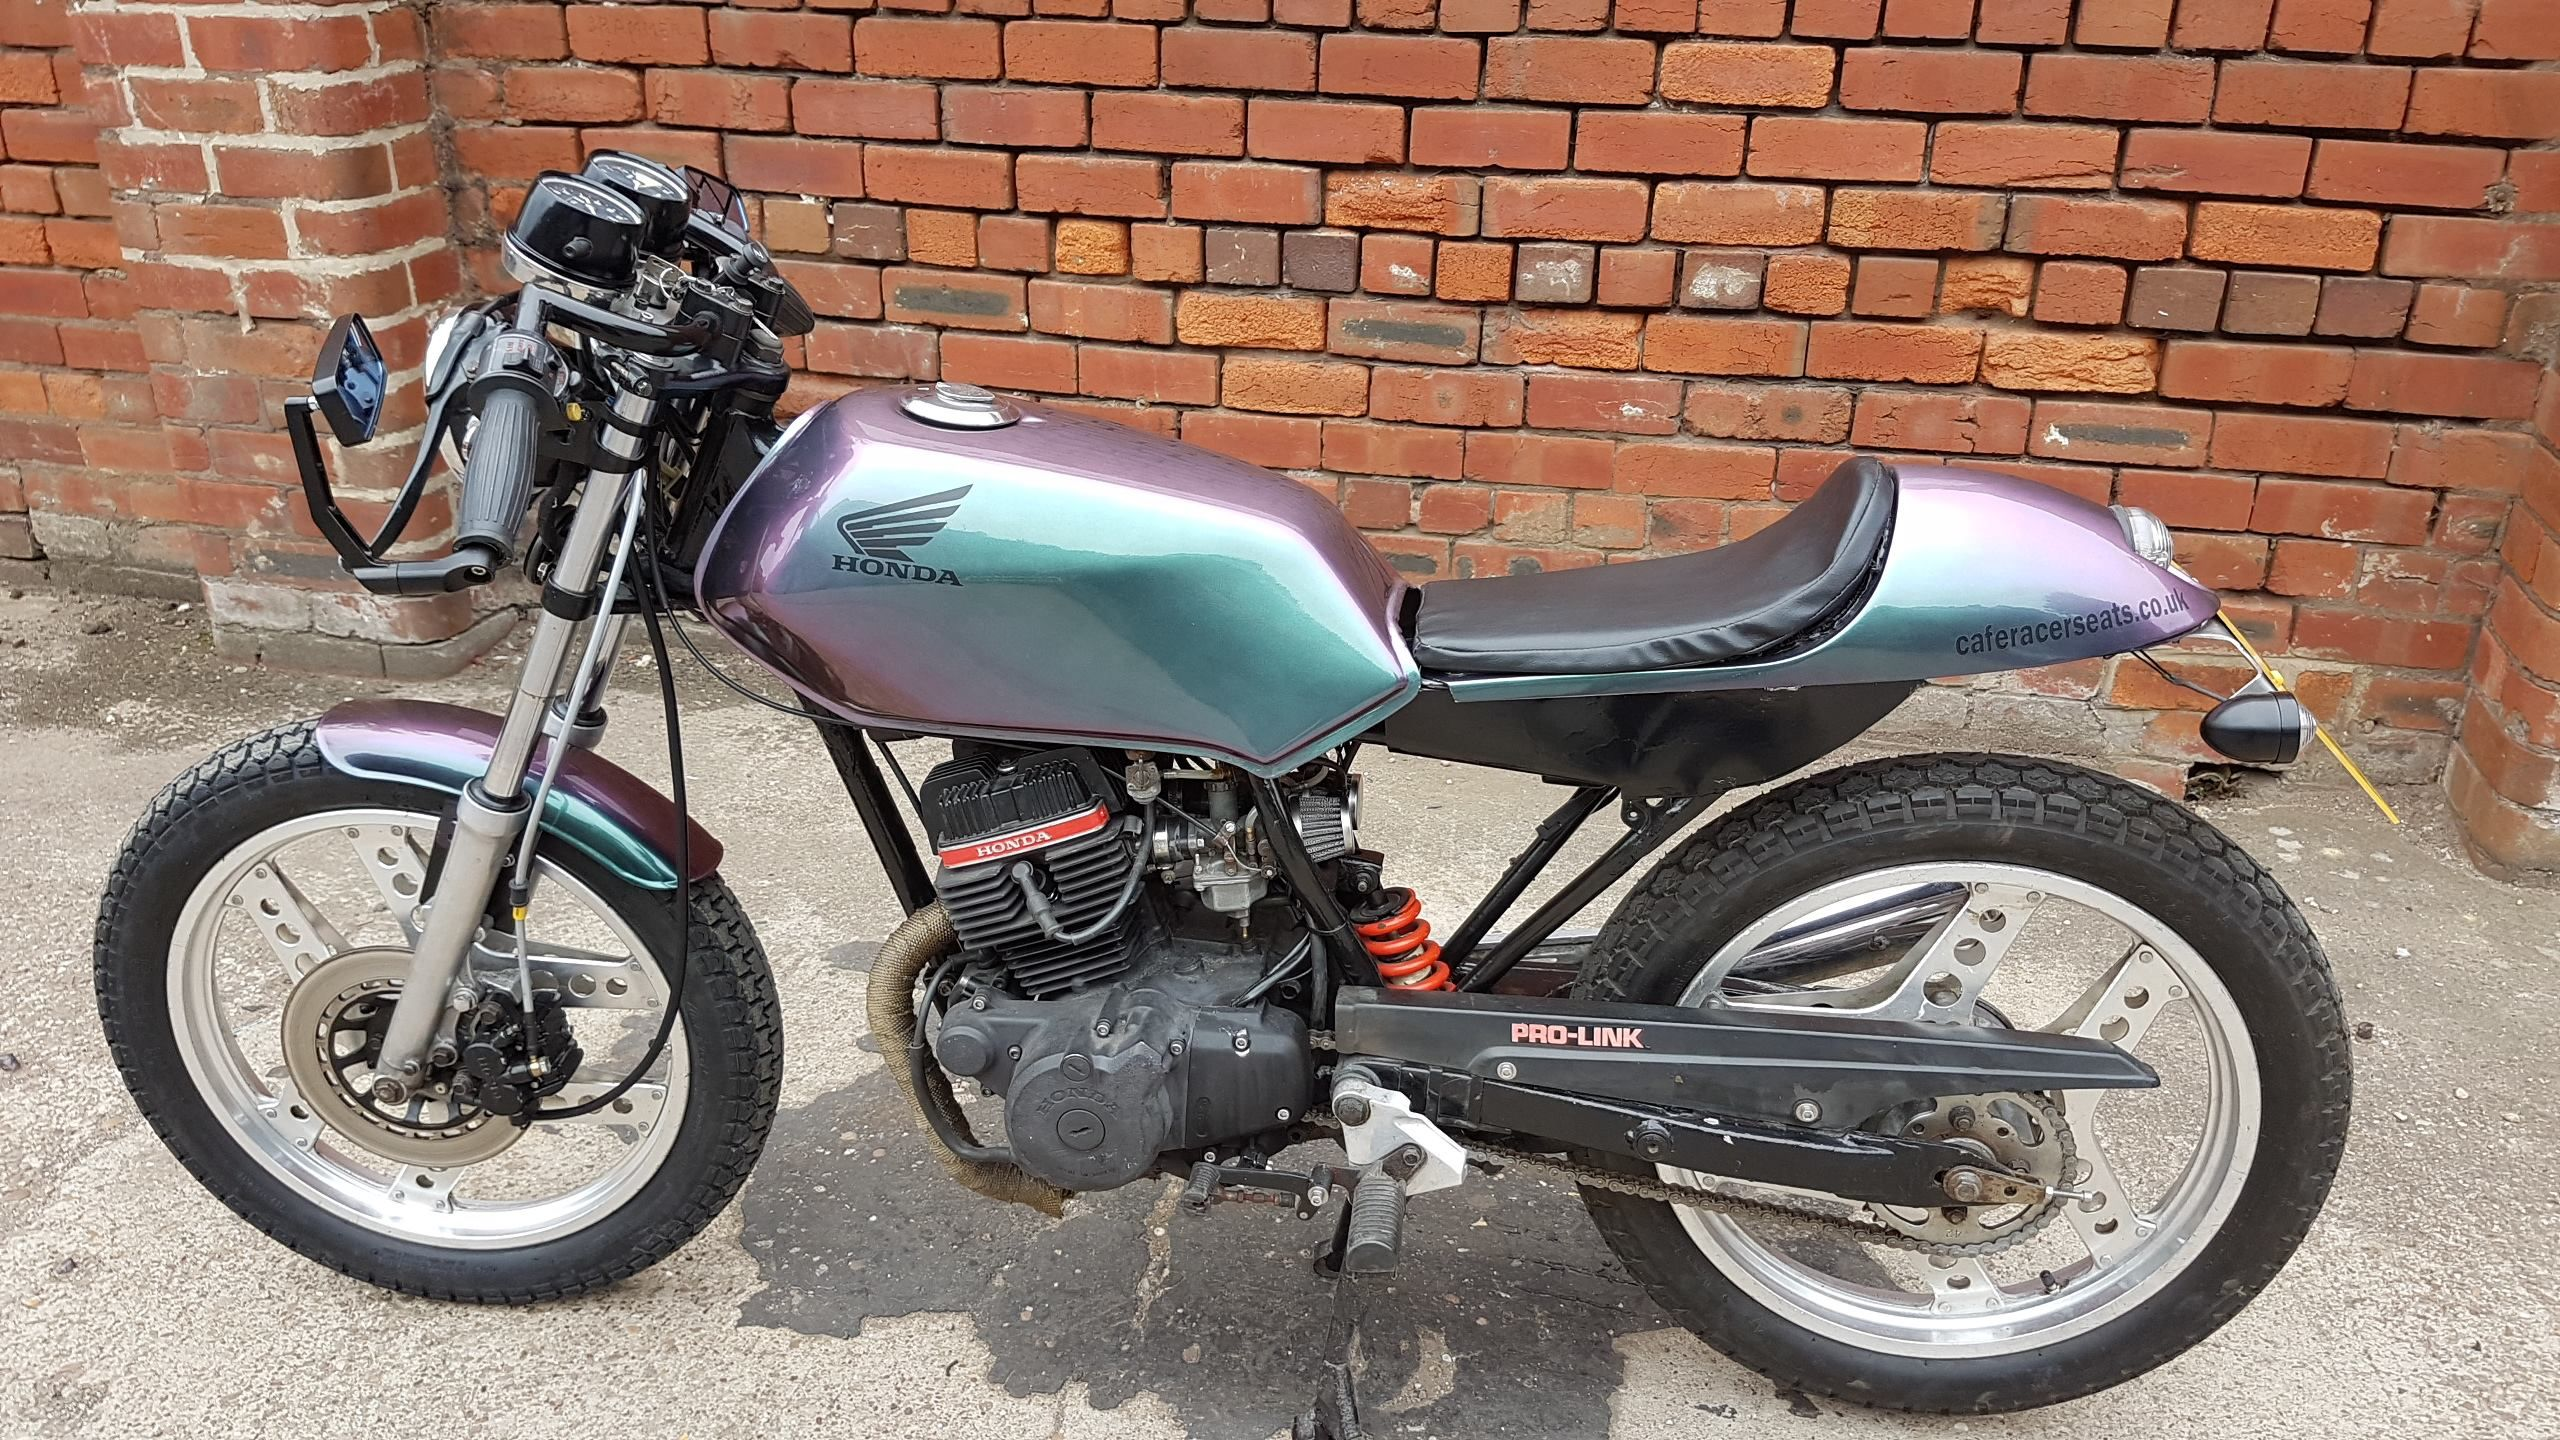 medium resolution of honda cb125 superdream cafe racer finished in flip paint by complete cafe racer